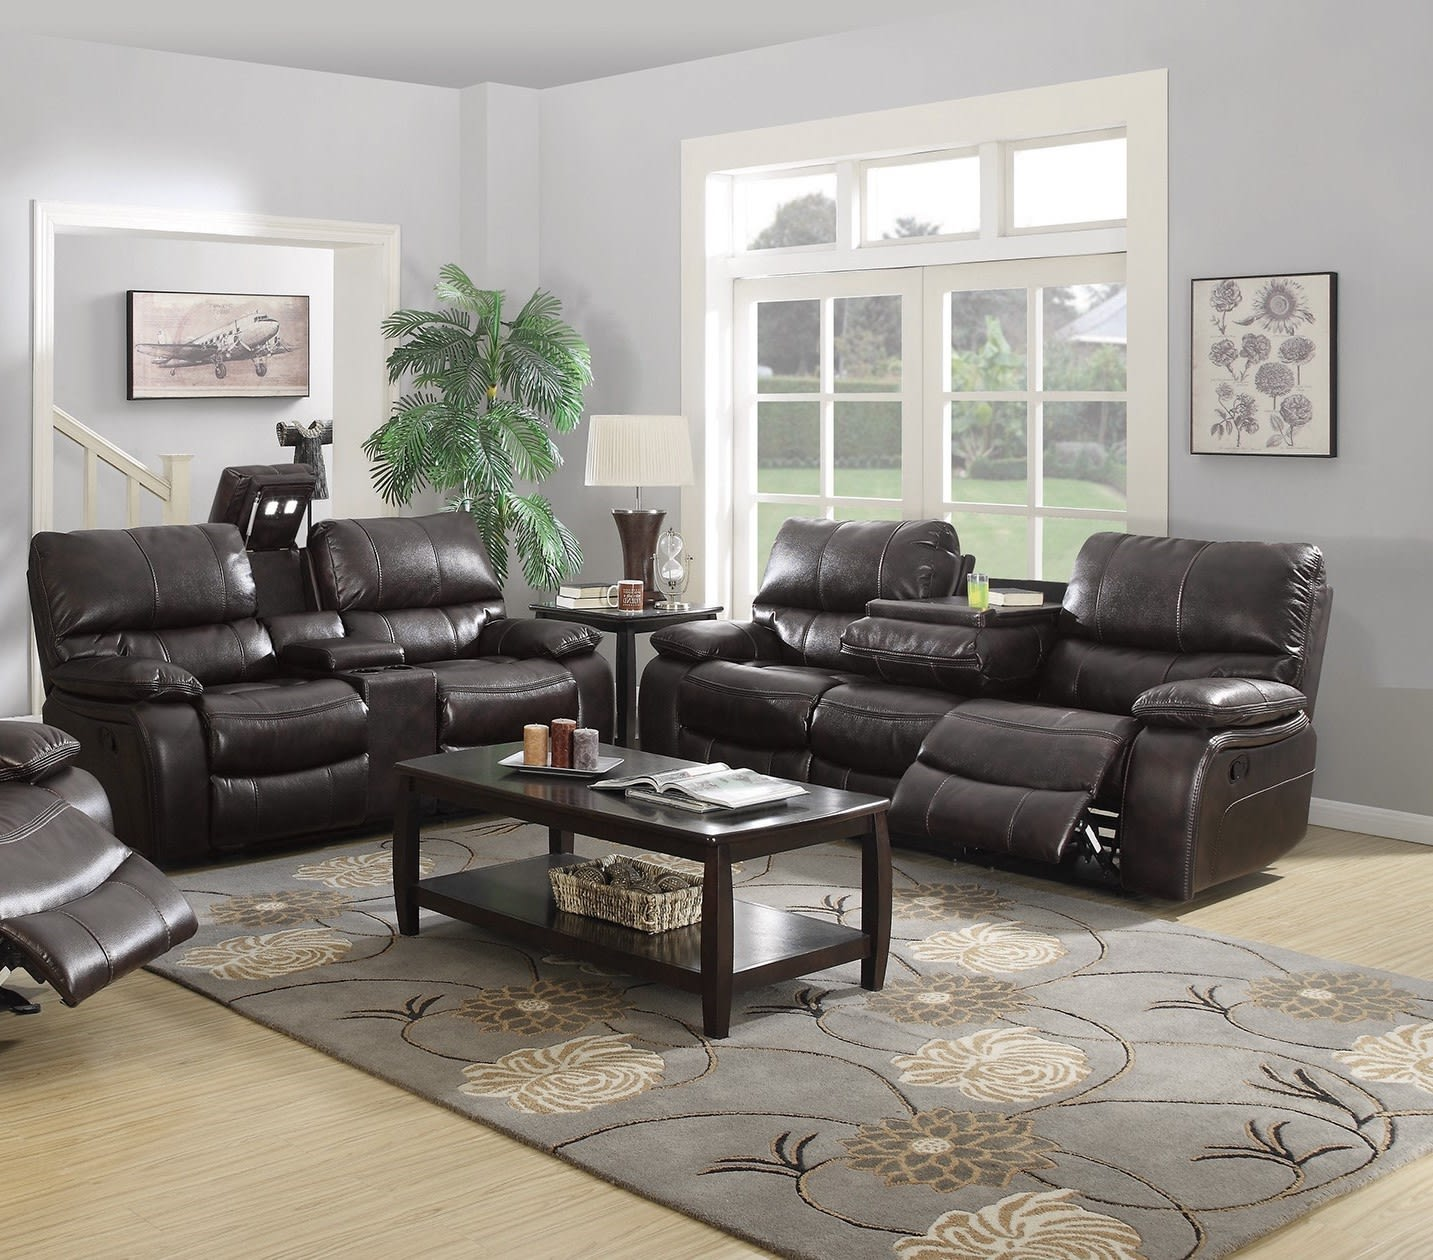 Willemse two tone dark brown motion 2 piece living room set